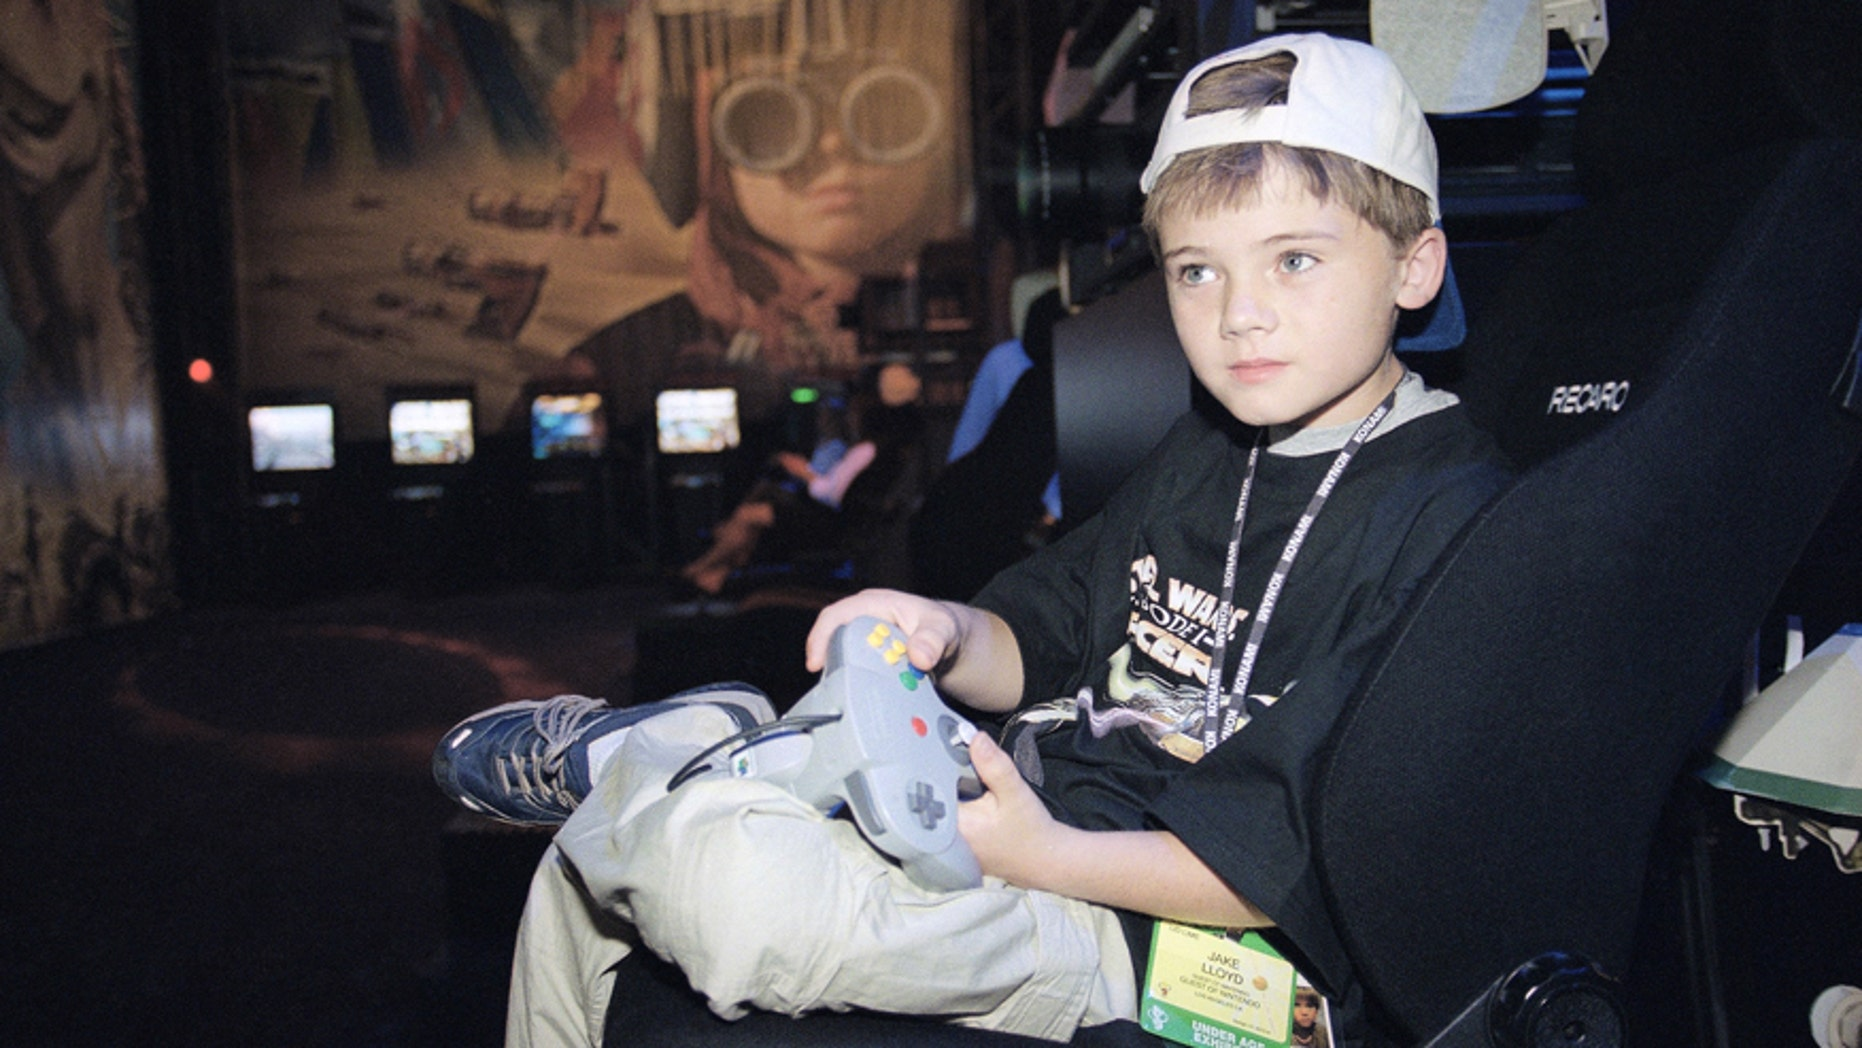 """FILE- In this May 13, 1999, file photo, actor Jake Lloyd; who portrays young Anakin Skywalker in the film """"Star Wars Episode I: The Phantom Menace;"""" plays a game during the Electronic Entertainment Expo in Los Angeles."""